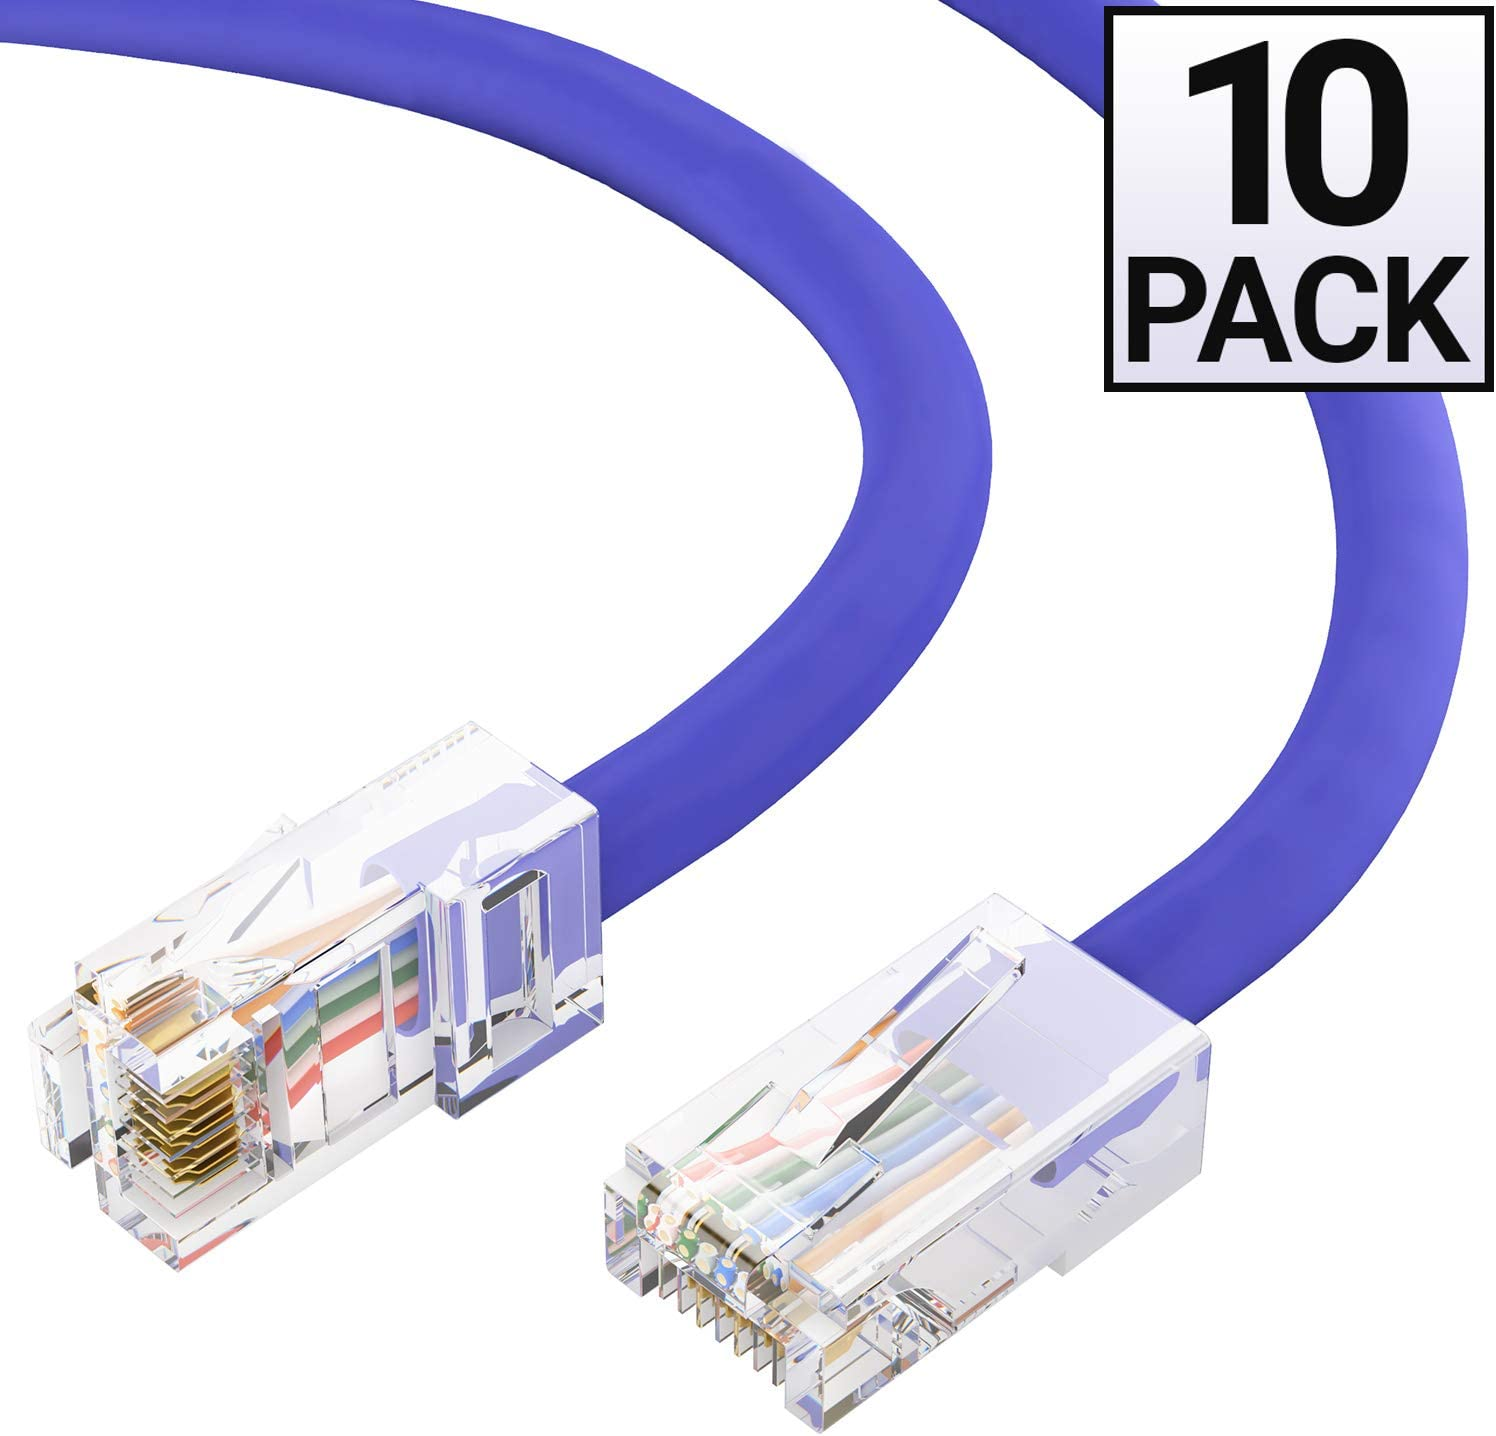 Gray GOWOS Cat6 Ethernet Cable 24AWG Network Cable with Gold Plated RJ45 Snagless//Molded//Booted Connector 550MHz 10-Pack - 5 FT 10 Gigabit//Sec High Speed LAN Internet//Patch Cable